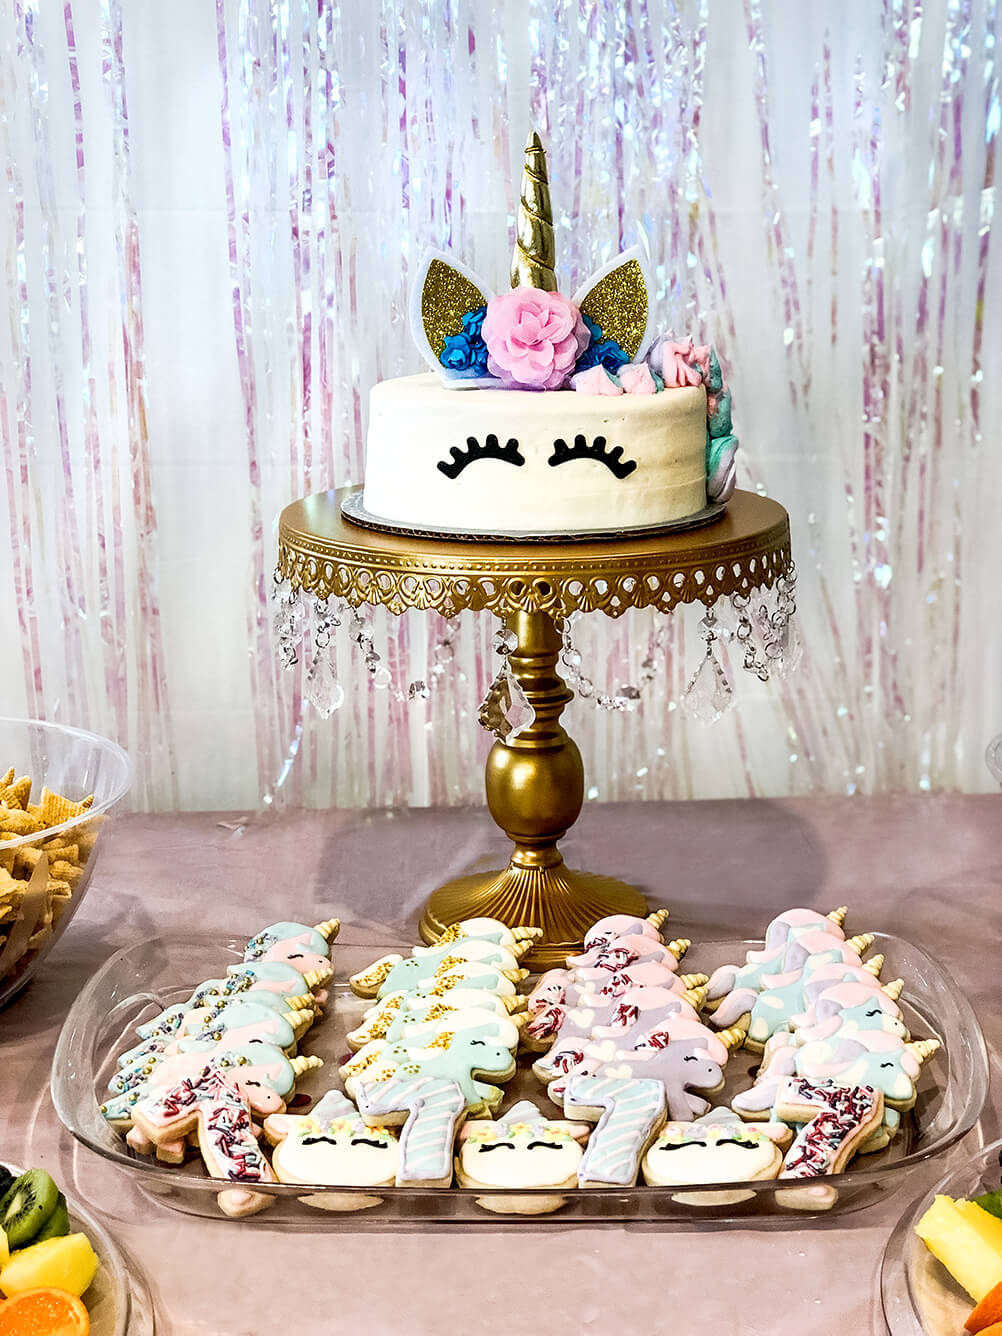 Wondrous 15 Unicorn Birthday Party Food Ideas Parties With A Cause Funny Birthday Cards Online Elaedamsfinfo